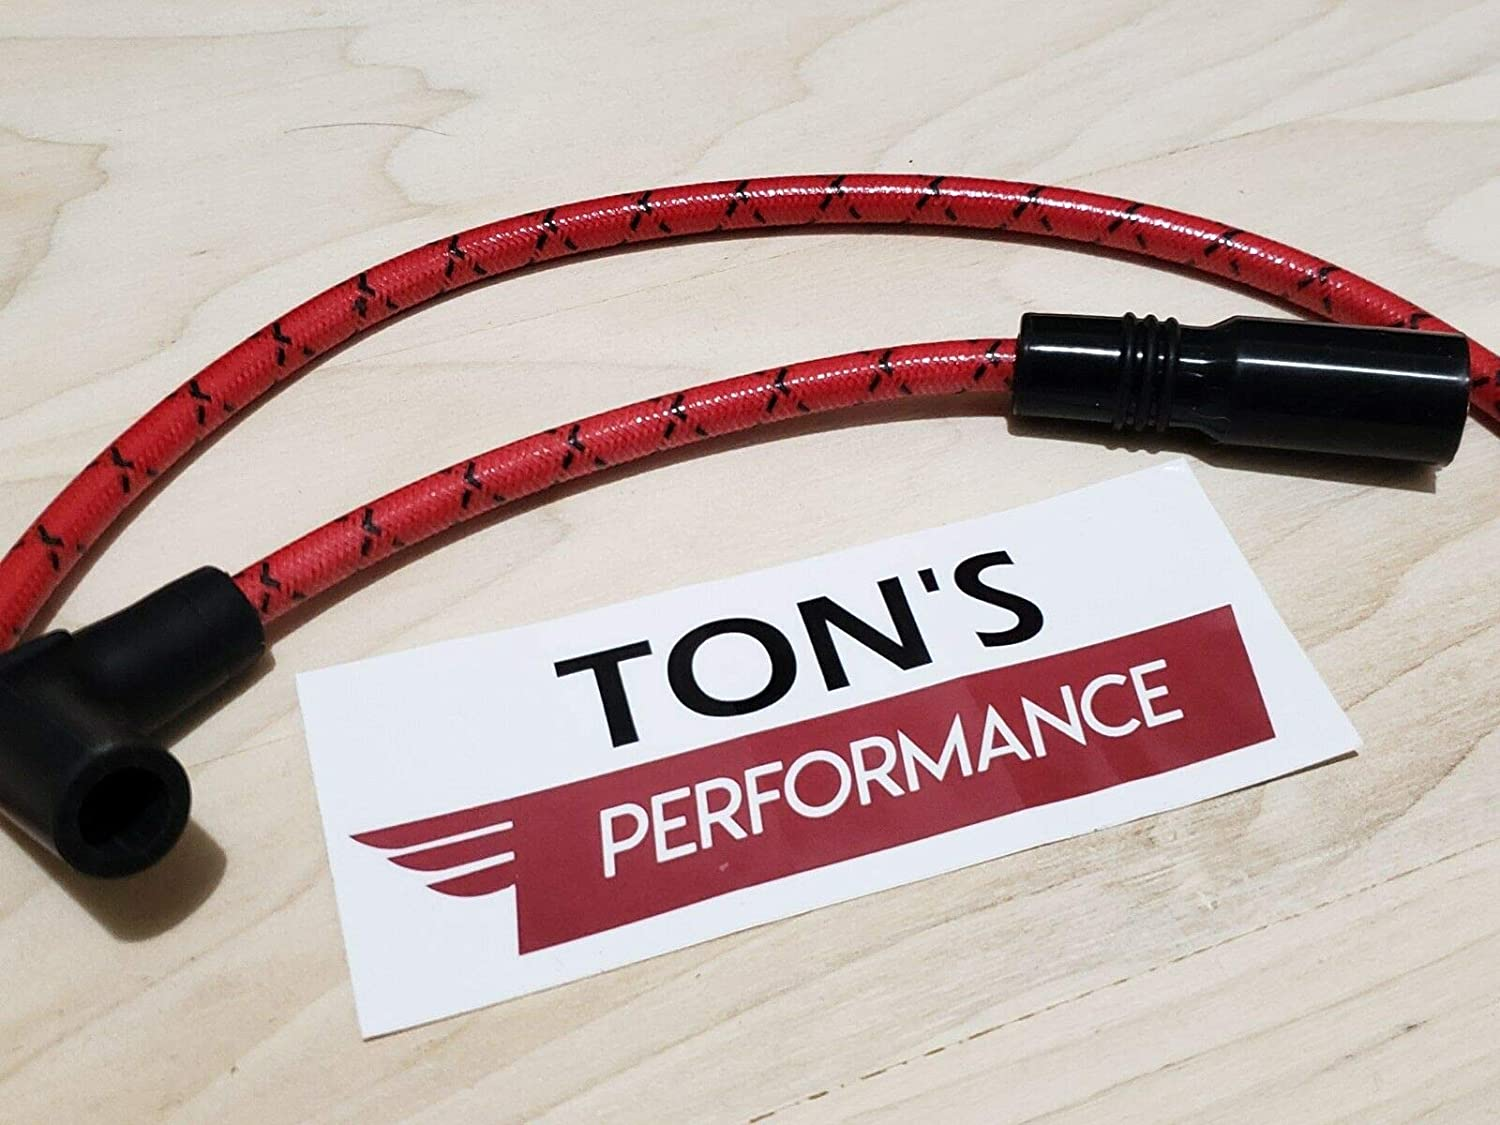 Harley Davidson Big Twin 99-19 FXD Dyna Softail Spark Plug Wires Red Black ClothQuality Accessories for Motorcycle Car Tuning by Tuning/_Store